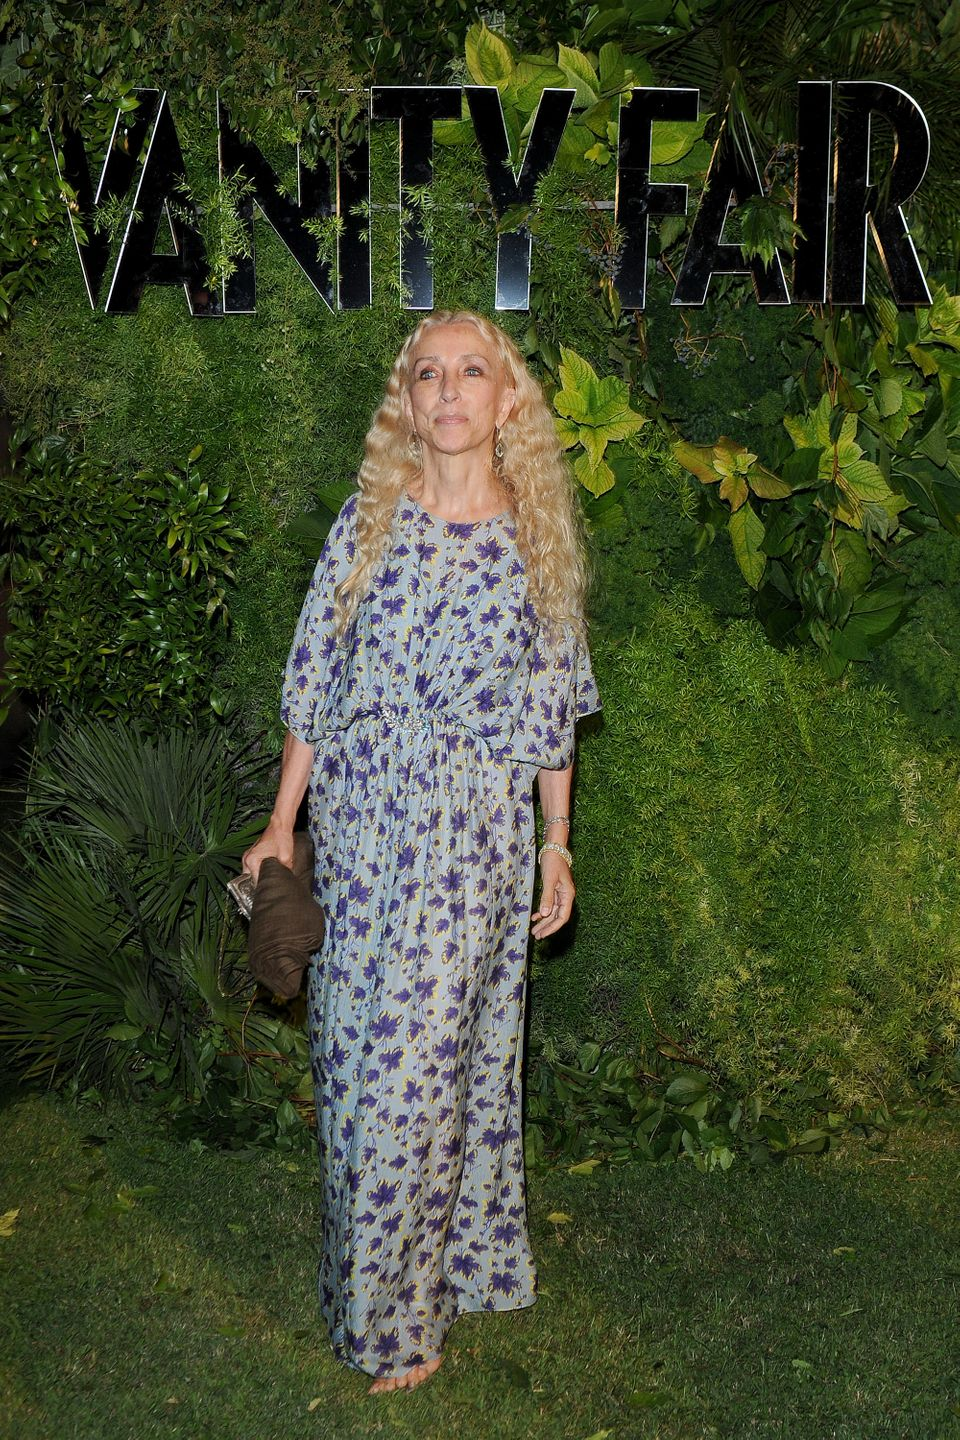 faf64570d43d A Look Back At Franca Sozzani's Iconic Style | HuffPost Life